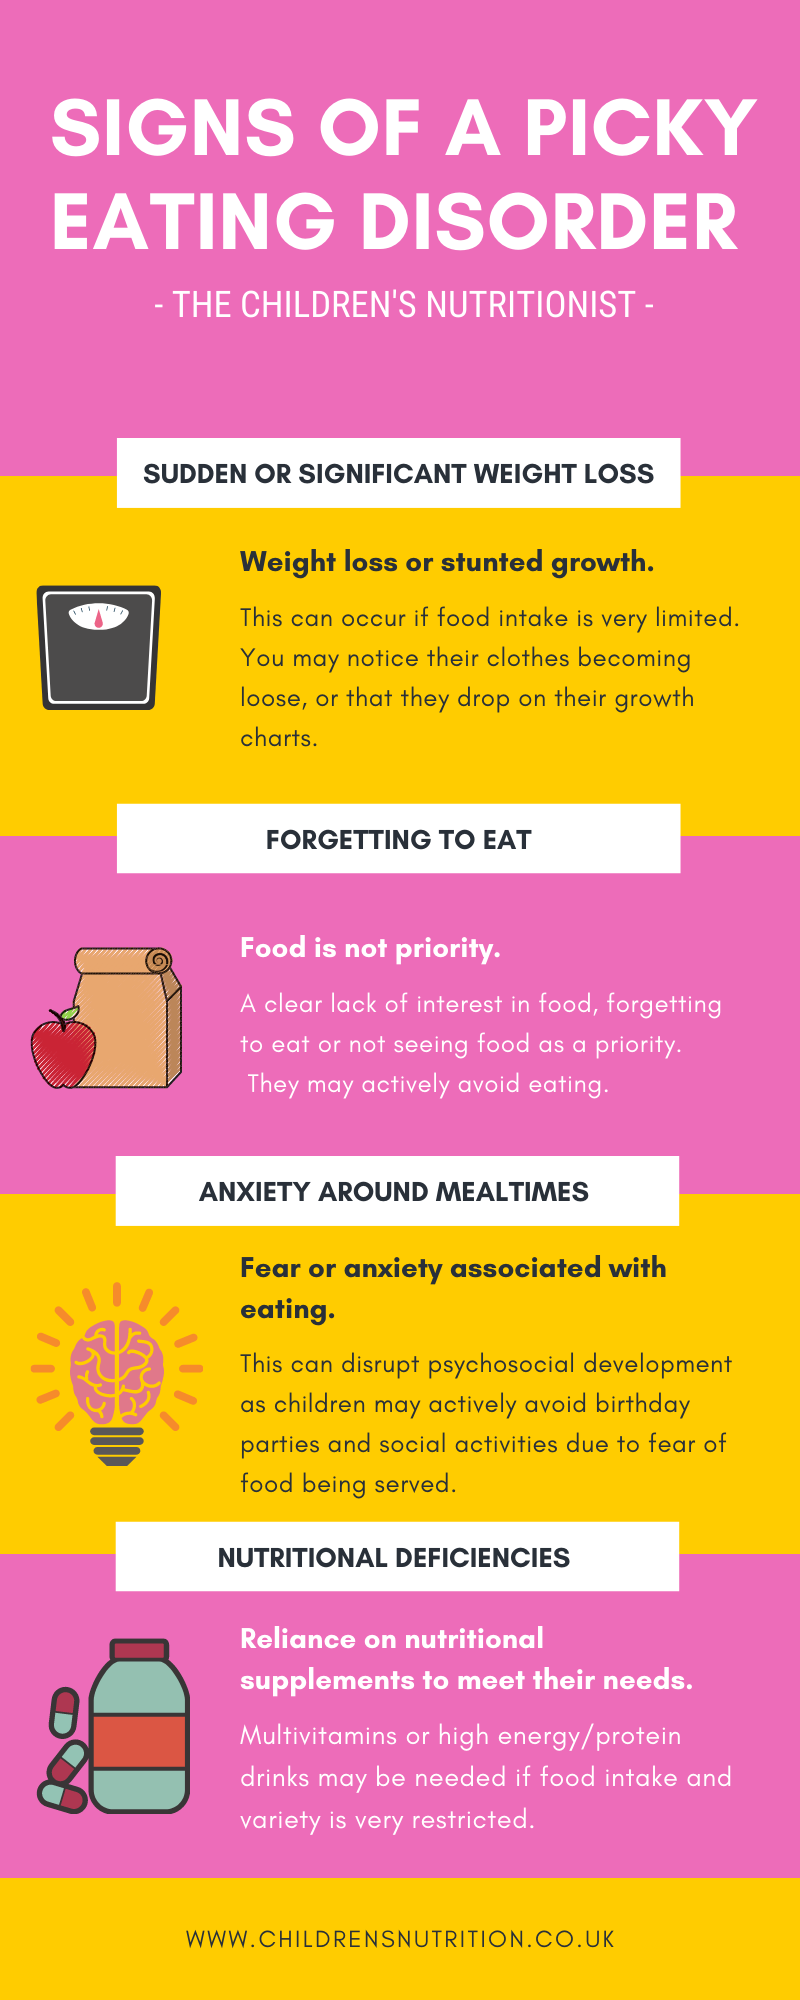 Signs of a picky eating disorder